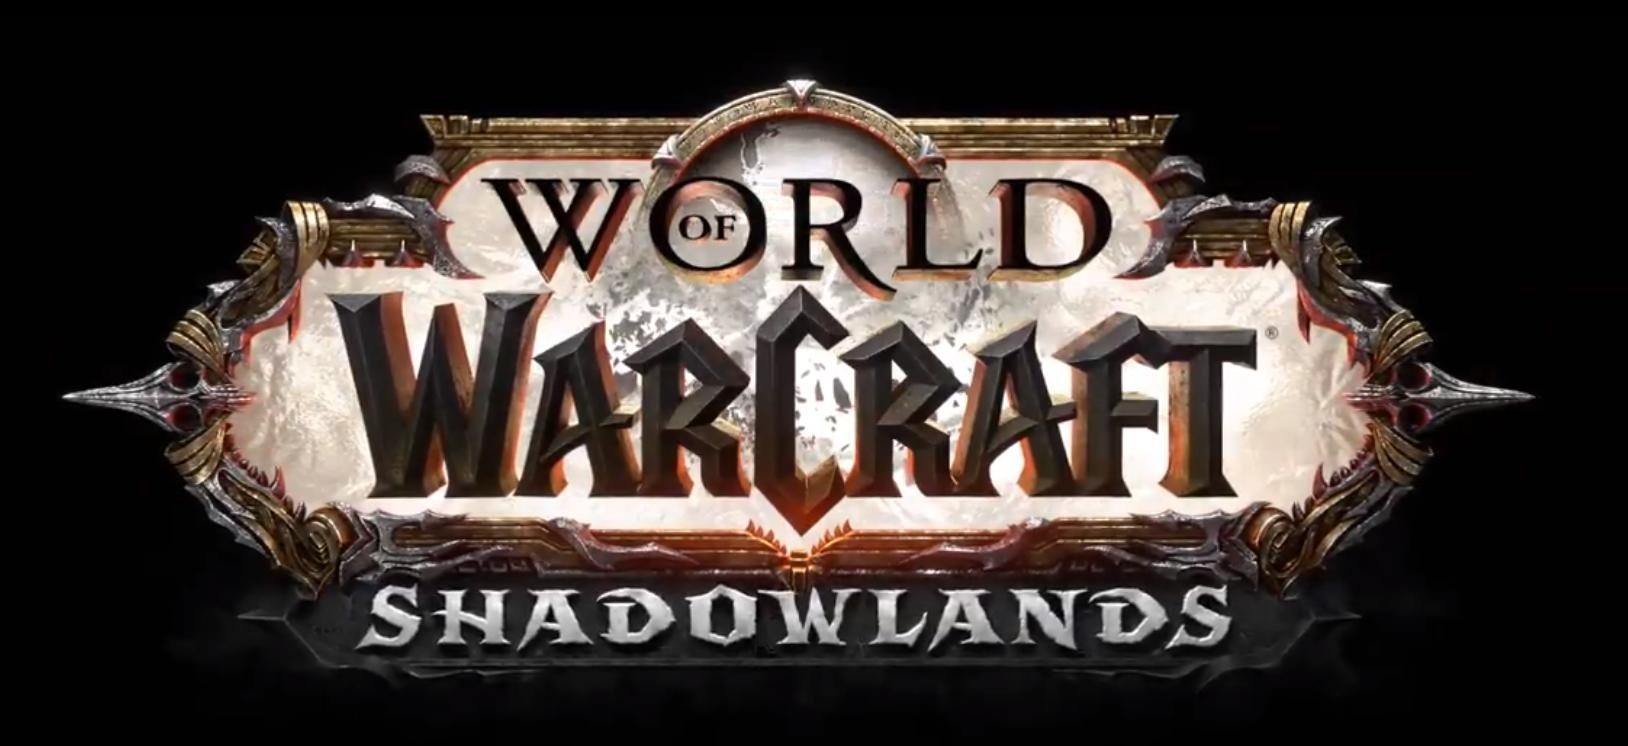 Wowhead Winter Veil 2020.New World Of Warcraft Expansion Revealed Shadowlands